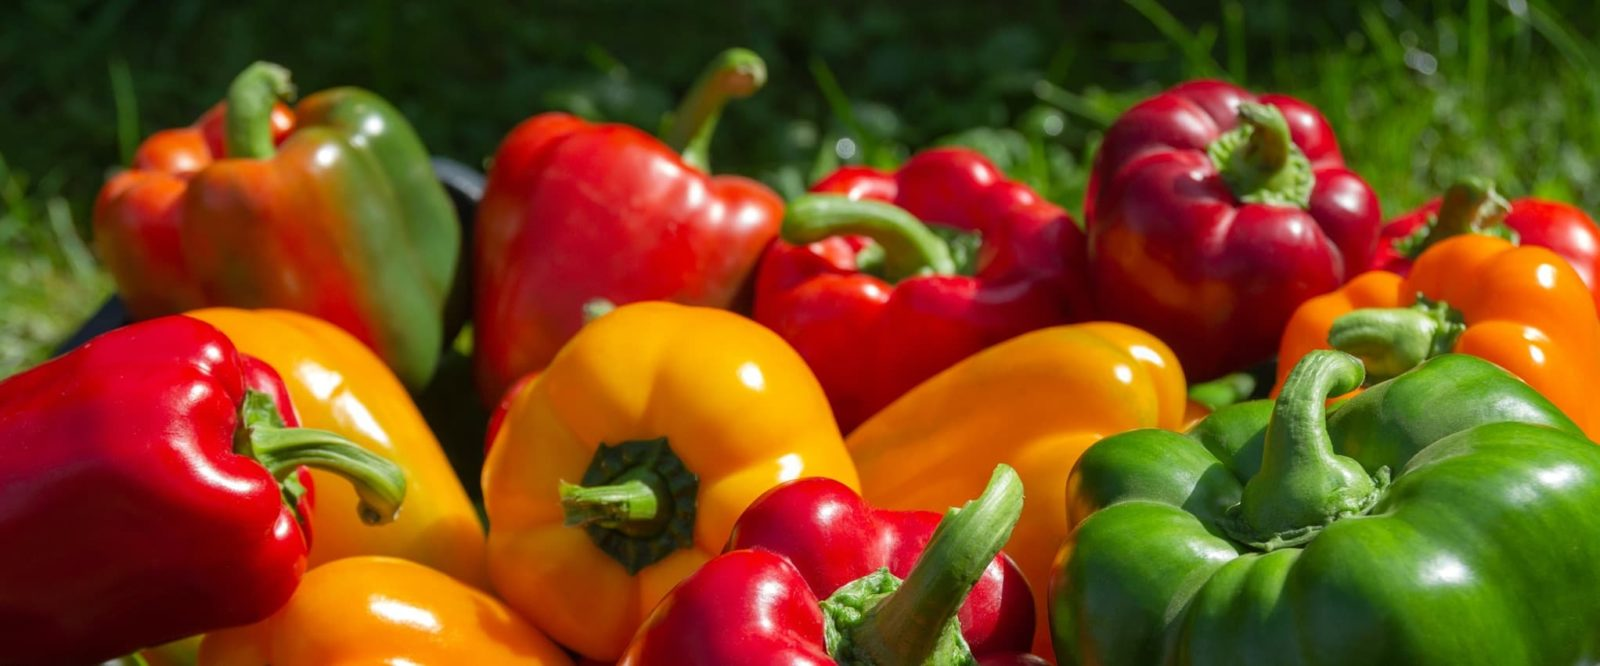 mix of harvested bell peppers in red, yellow and green